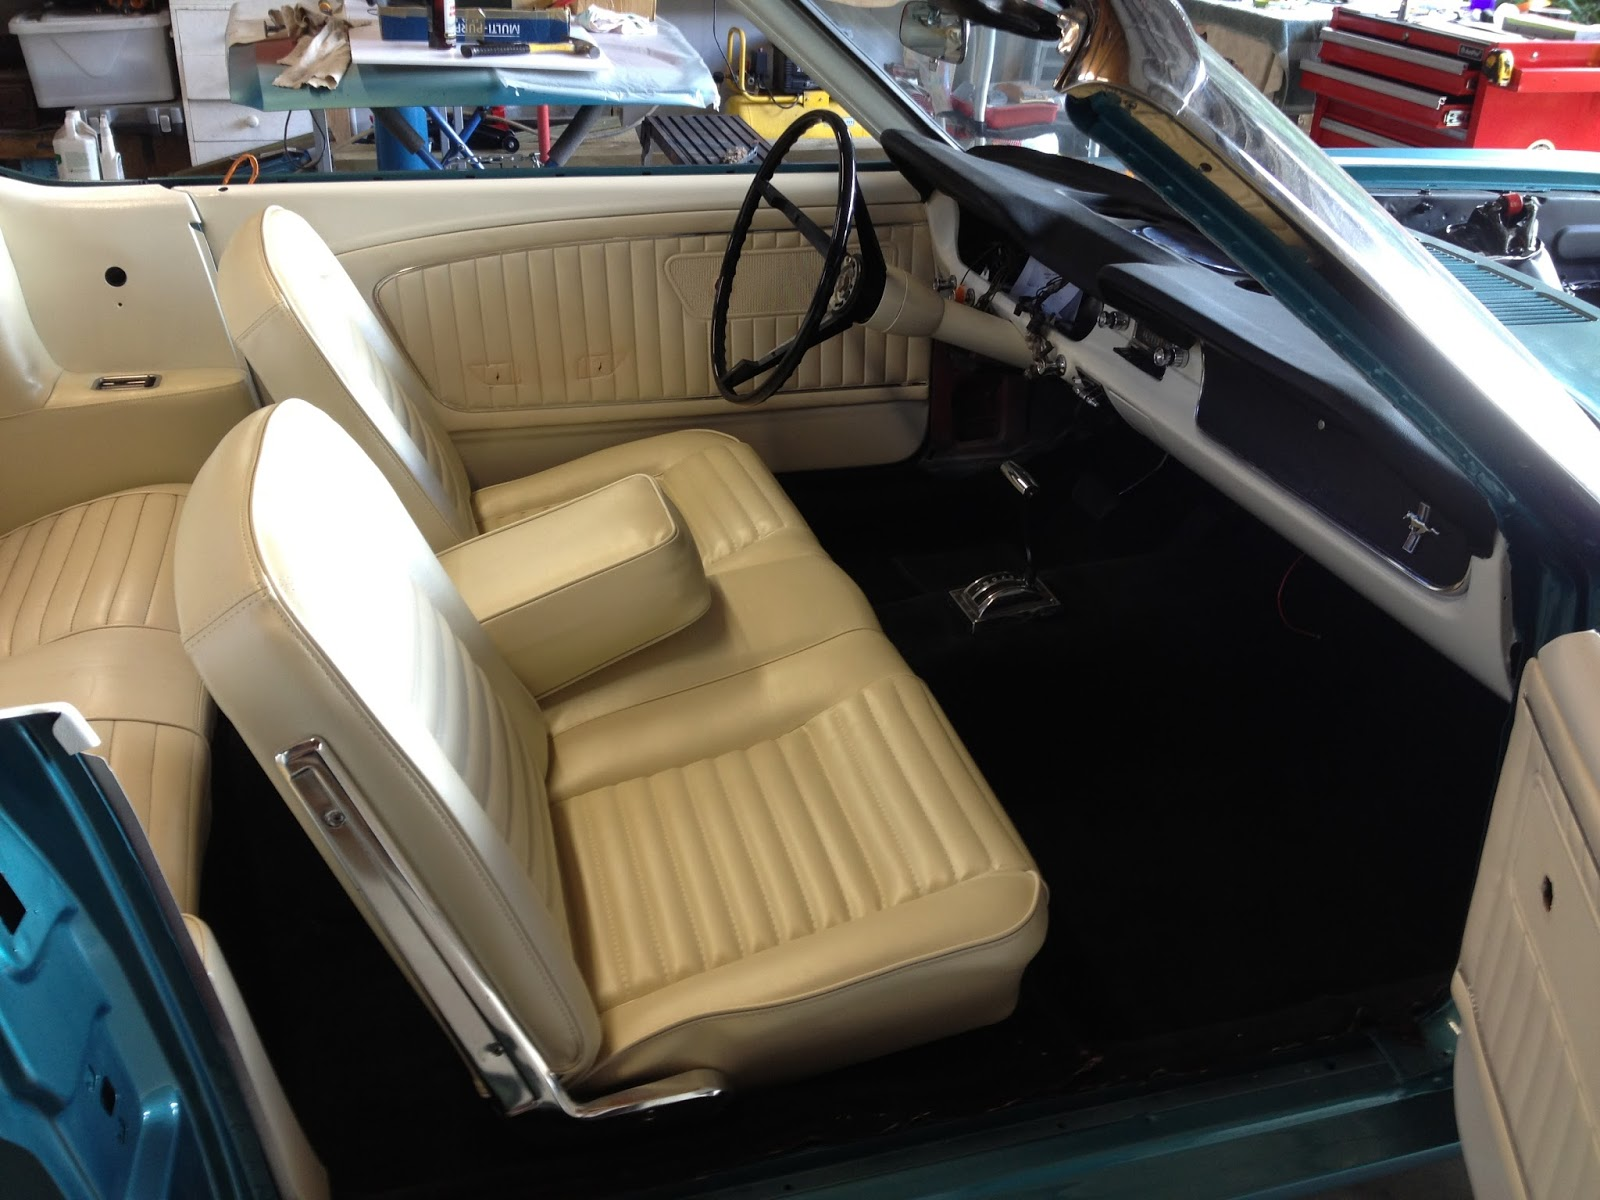 1965 convertible mustang restoration 1965 ford mustang rare front bench seat and centre armrest. Black Bedroom Furniture Sets. Home Design Ideas